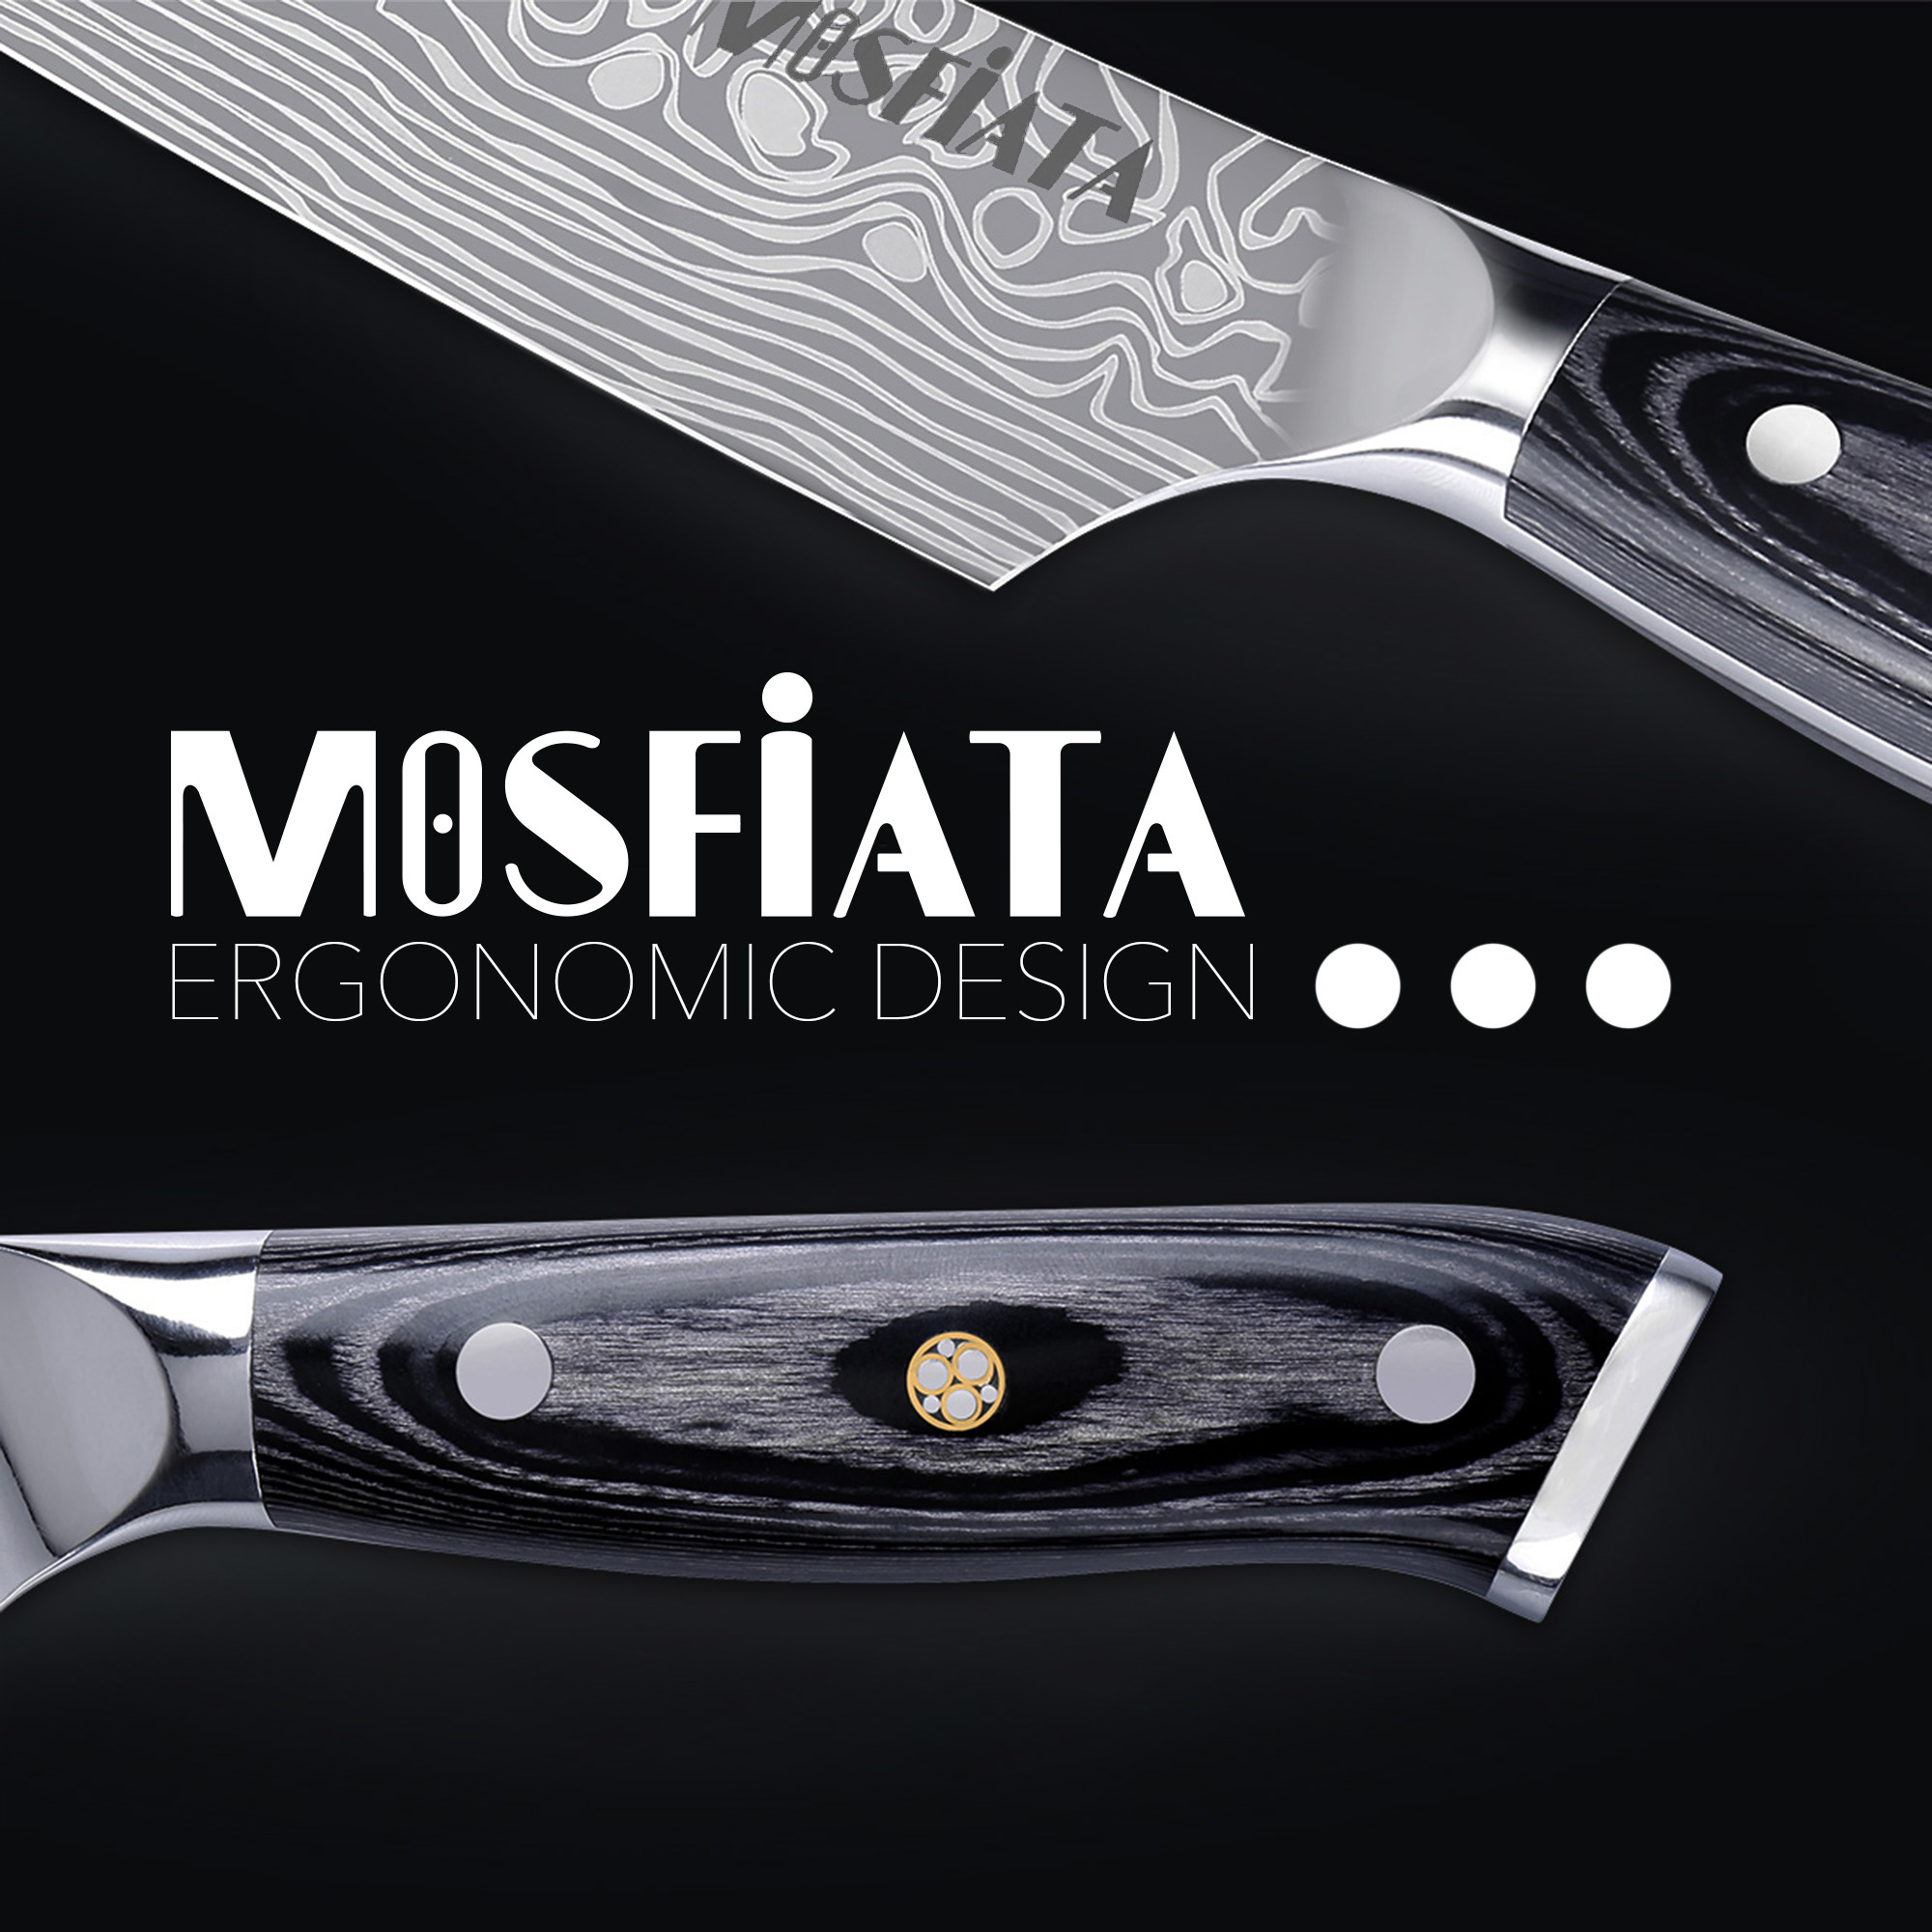 mosfiata knife 08 copy.jpg